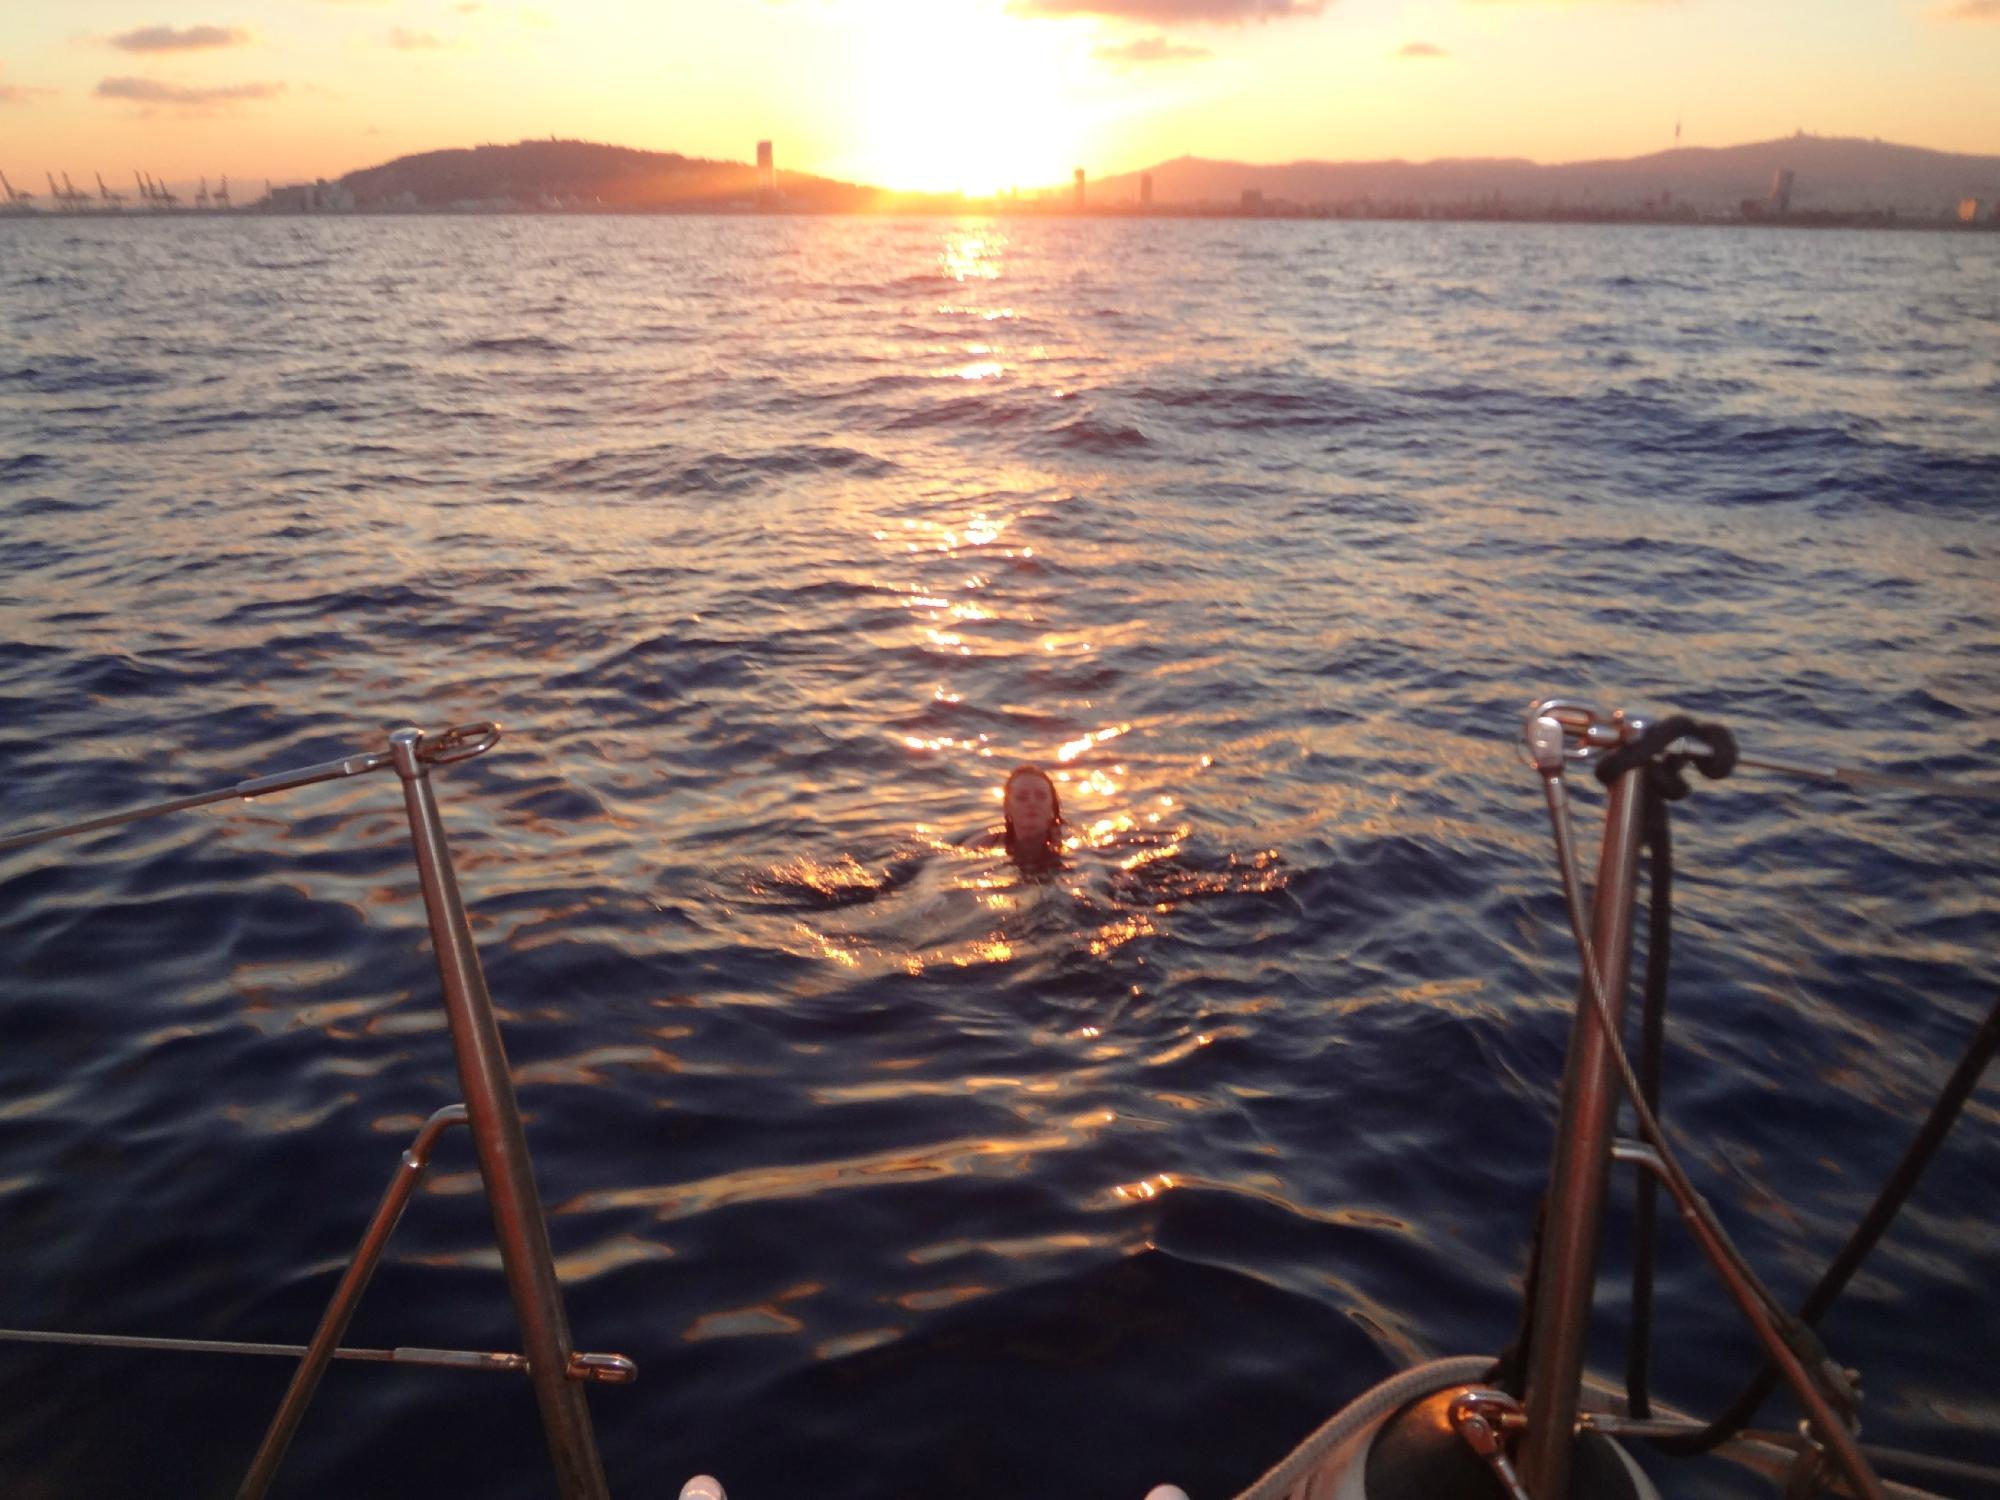 Sunset swim in the Med